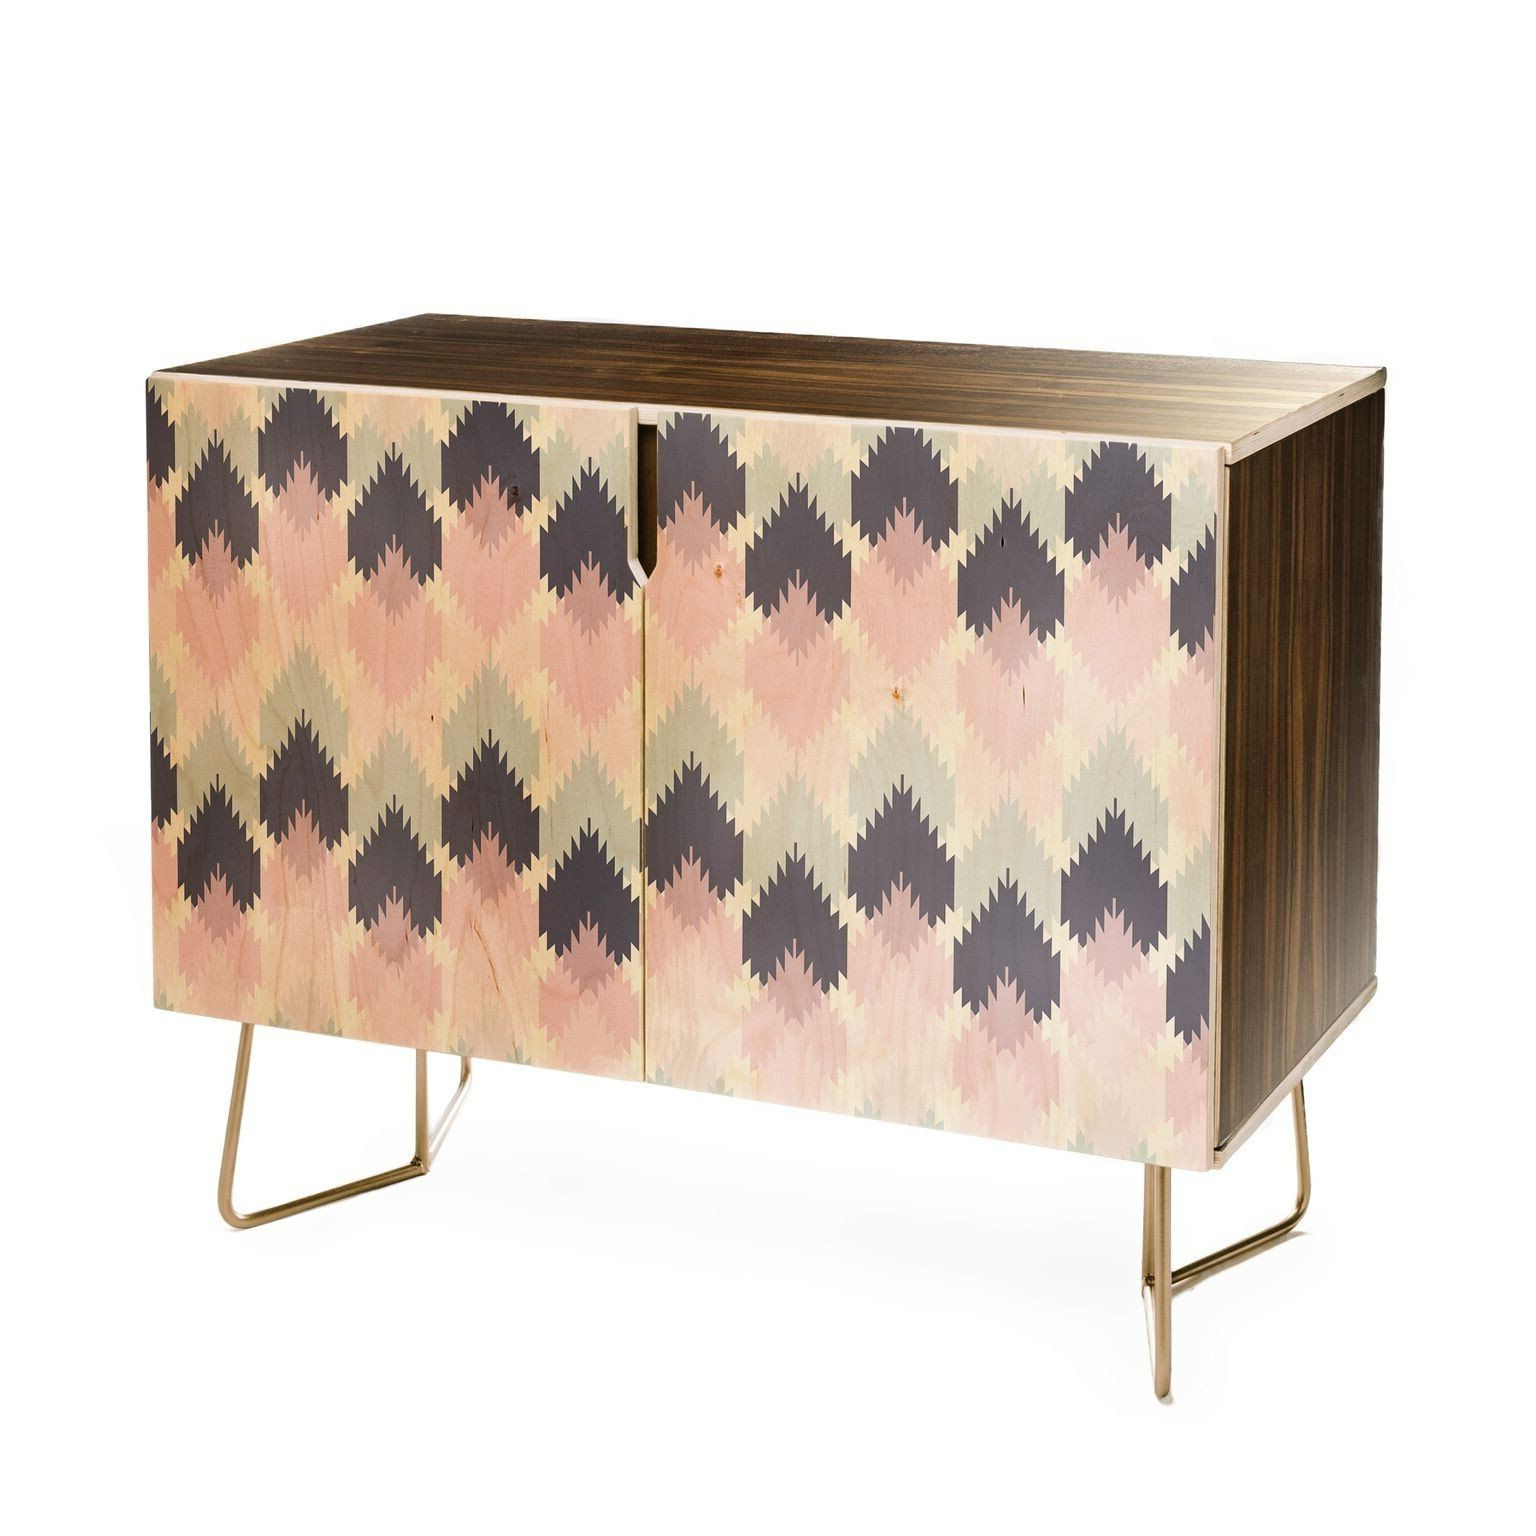 Credenzacraftbelly Spring Kilim | Eclectic Room Throughout Fleurette Night Credenzas (View 9 of 20)